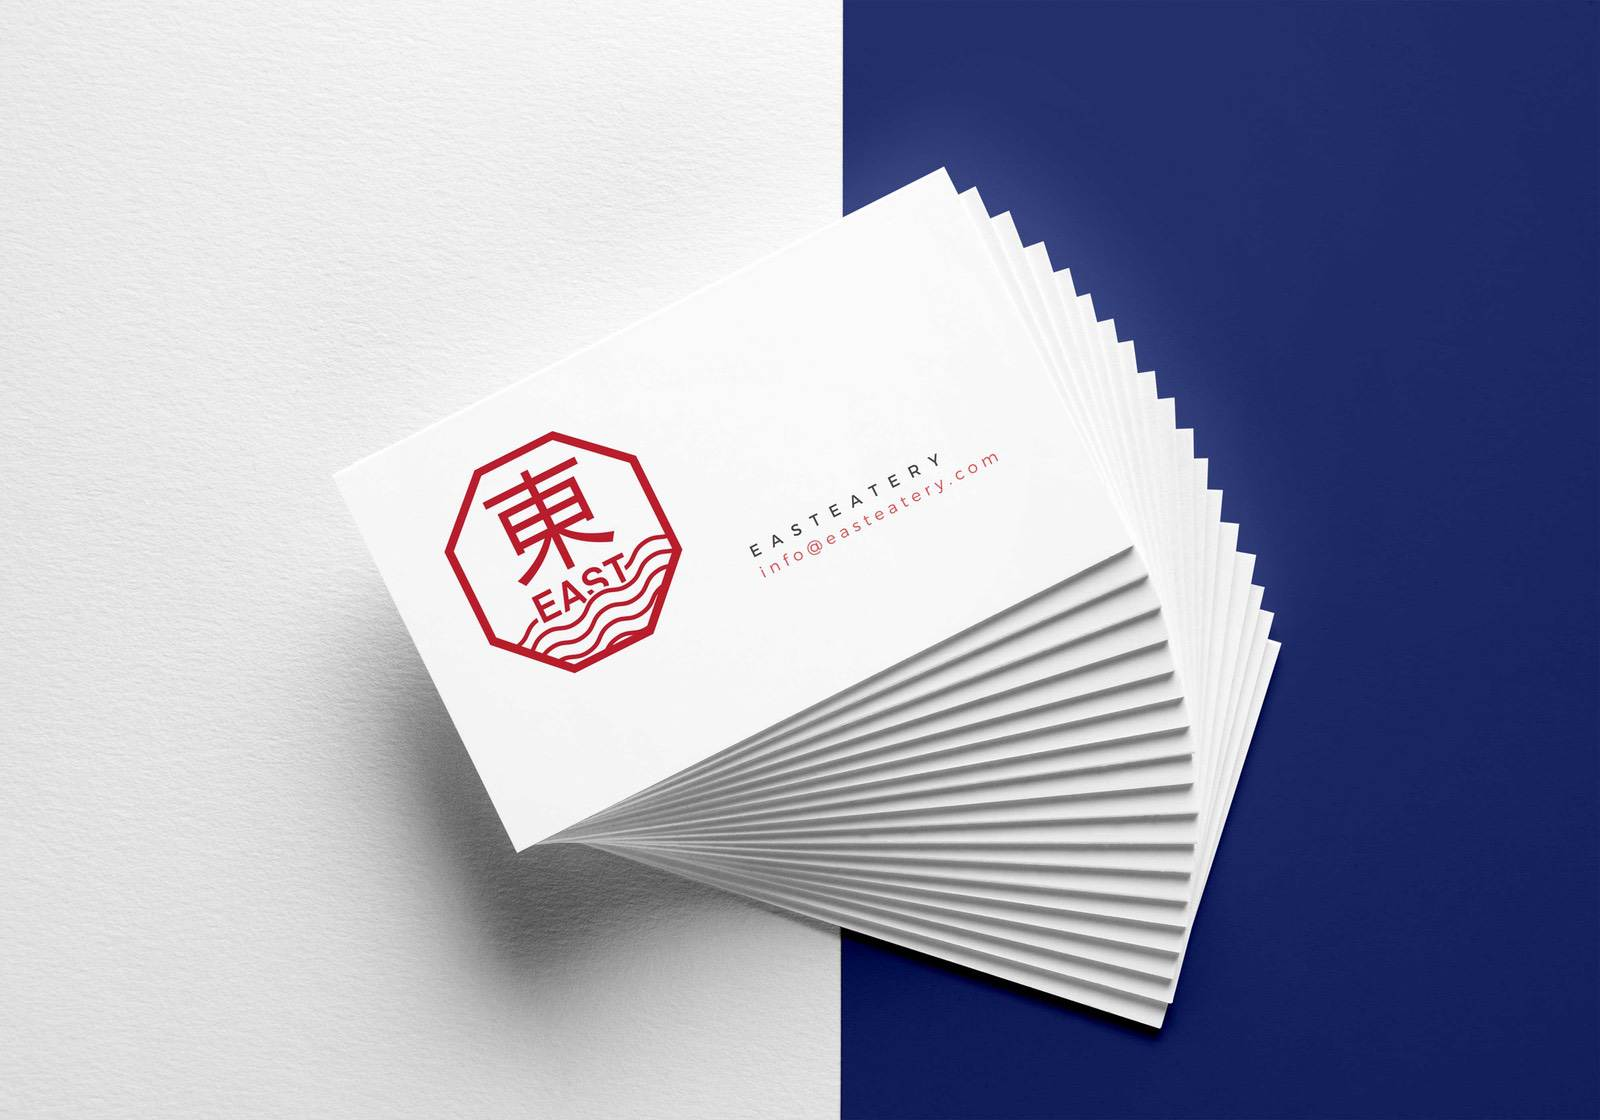 East_Business-card_2-2